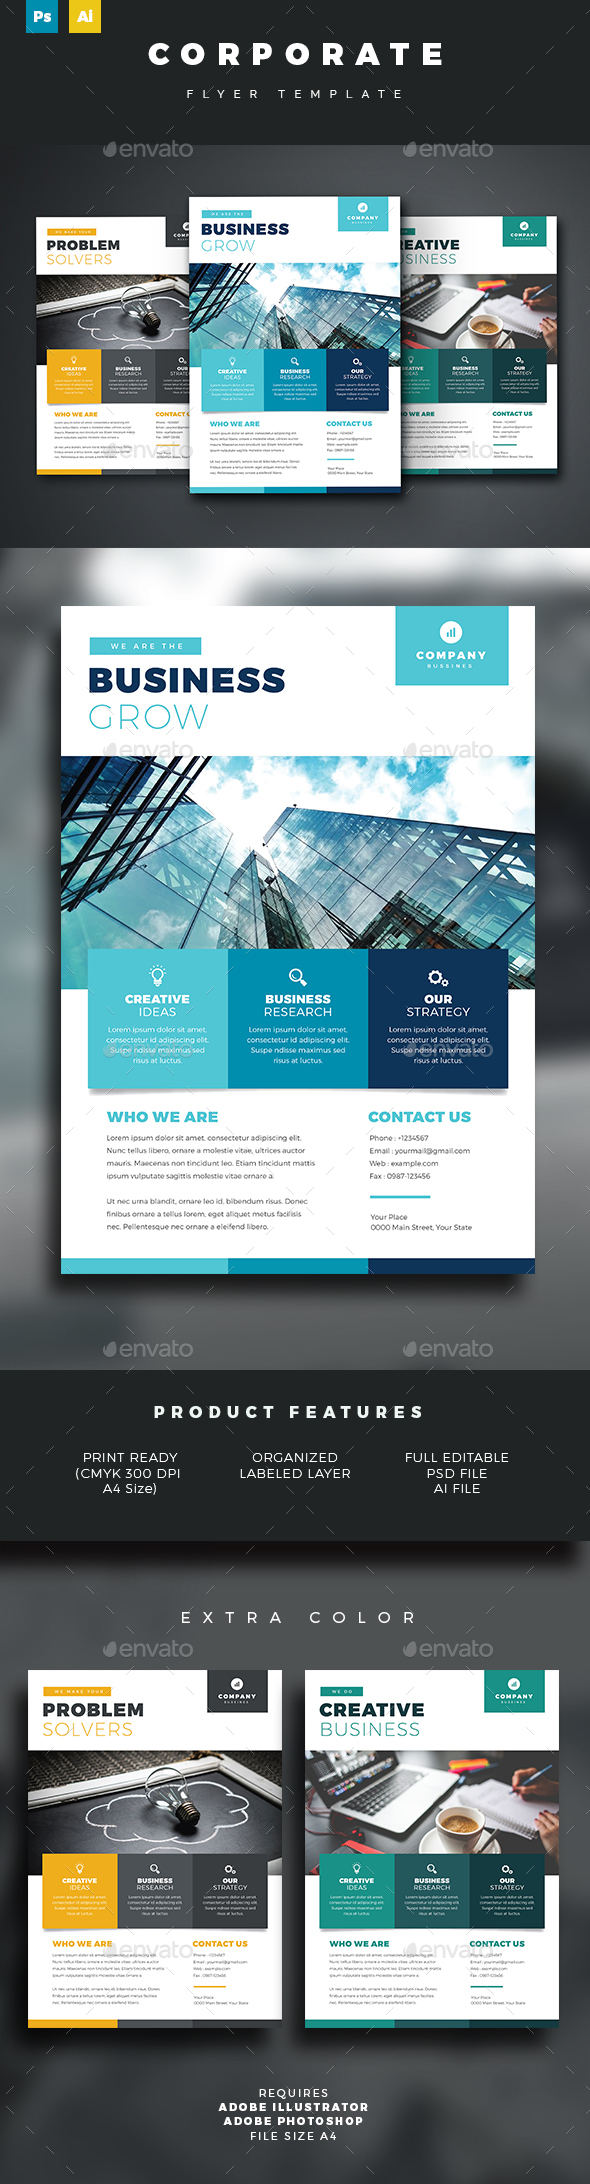 Corporate Flyer Template - Corporate Business Cards